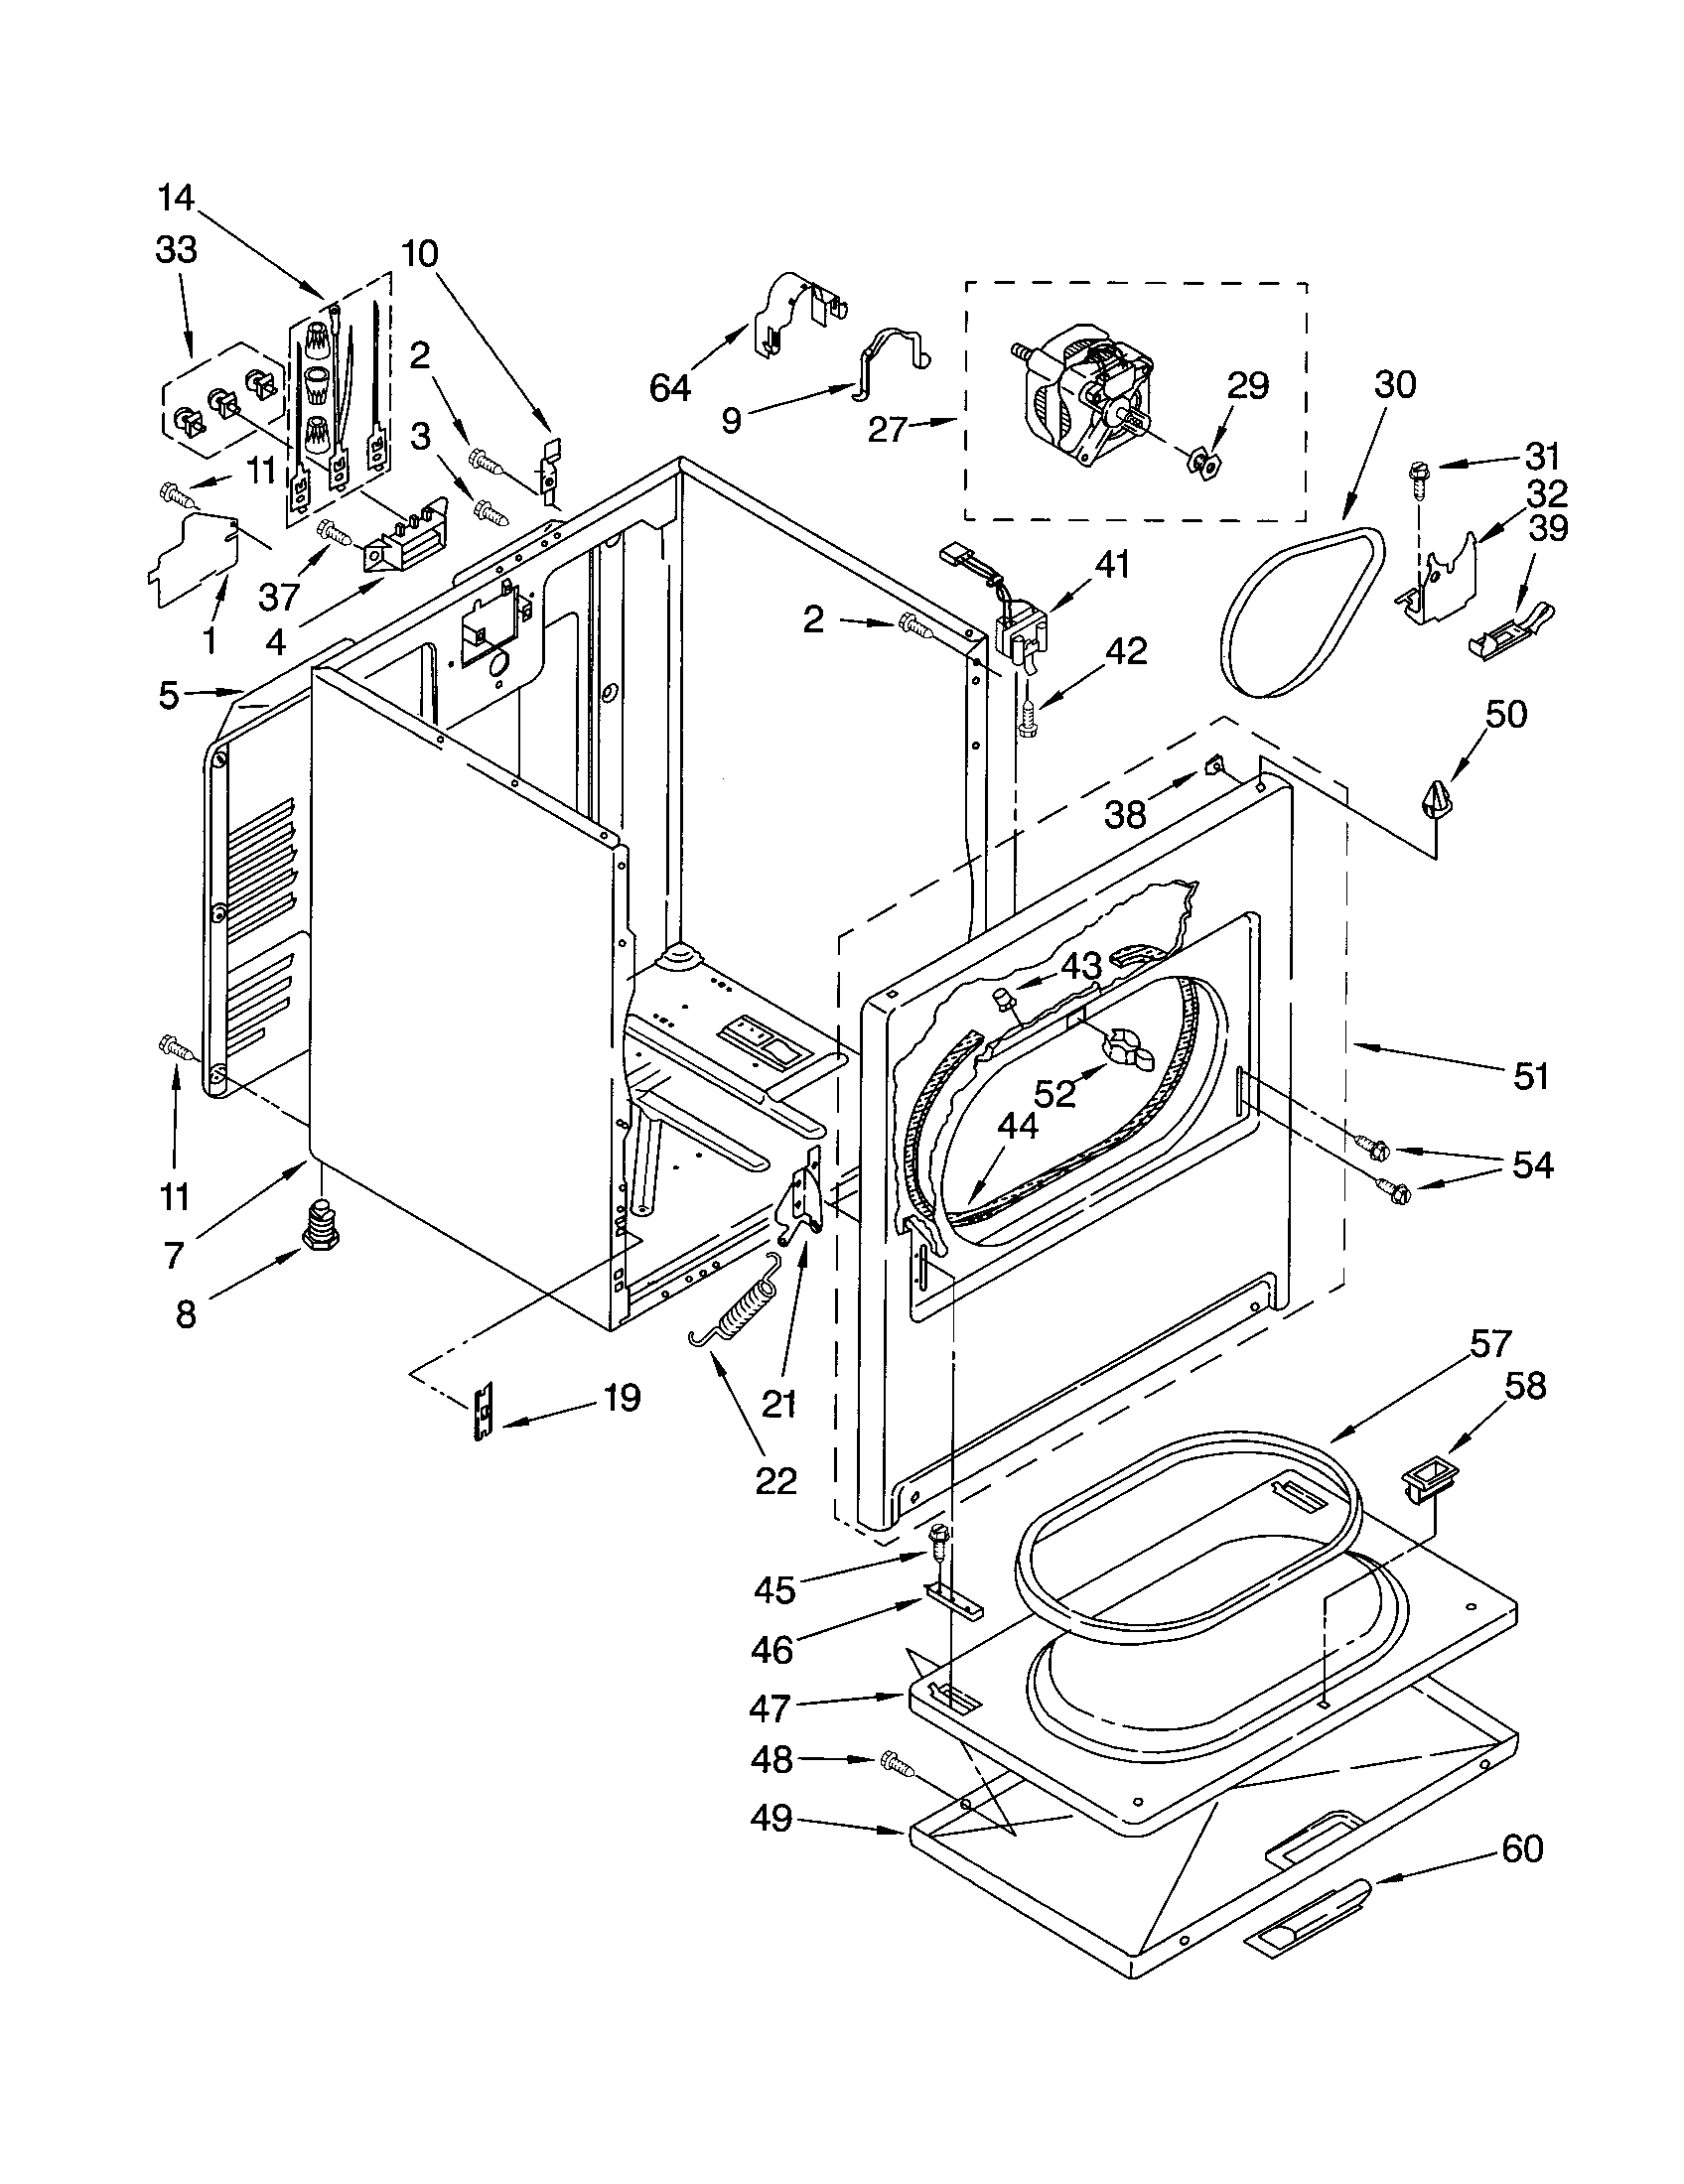 Whirlpool dishwasher parts your price dishwasher whirlpool parts famous kenmore dryer parts diagram kenmore dryer parts diagram x 54 kb png pooptronica Gallery